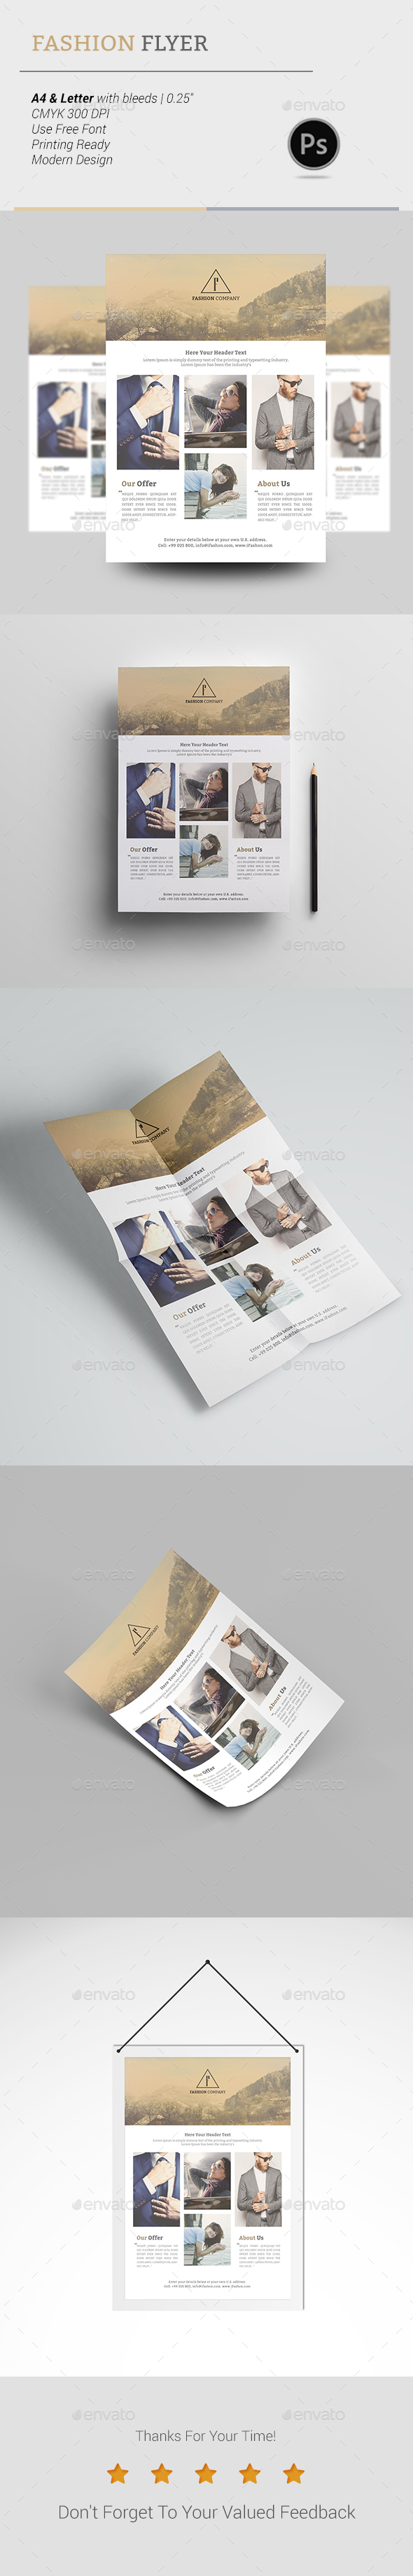 Fashion Flyer - Corporate Flyers